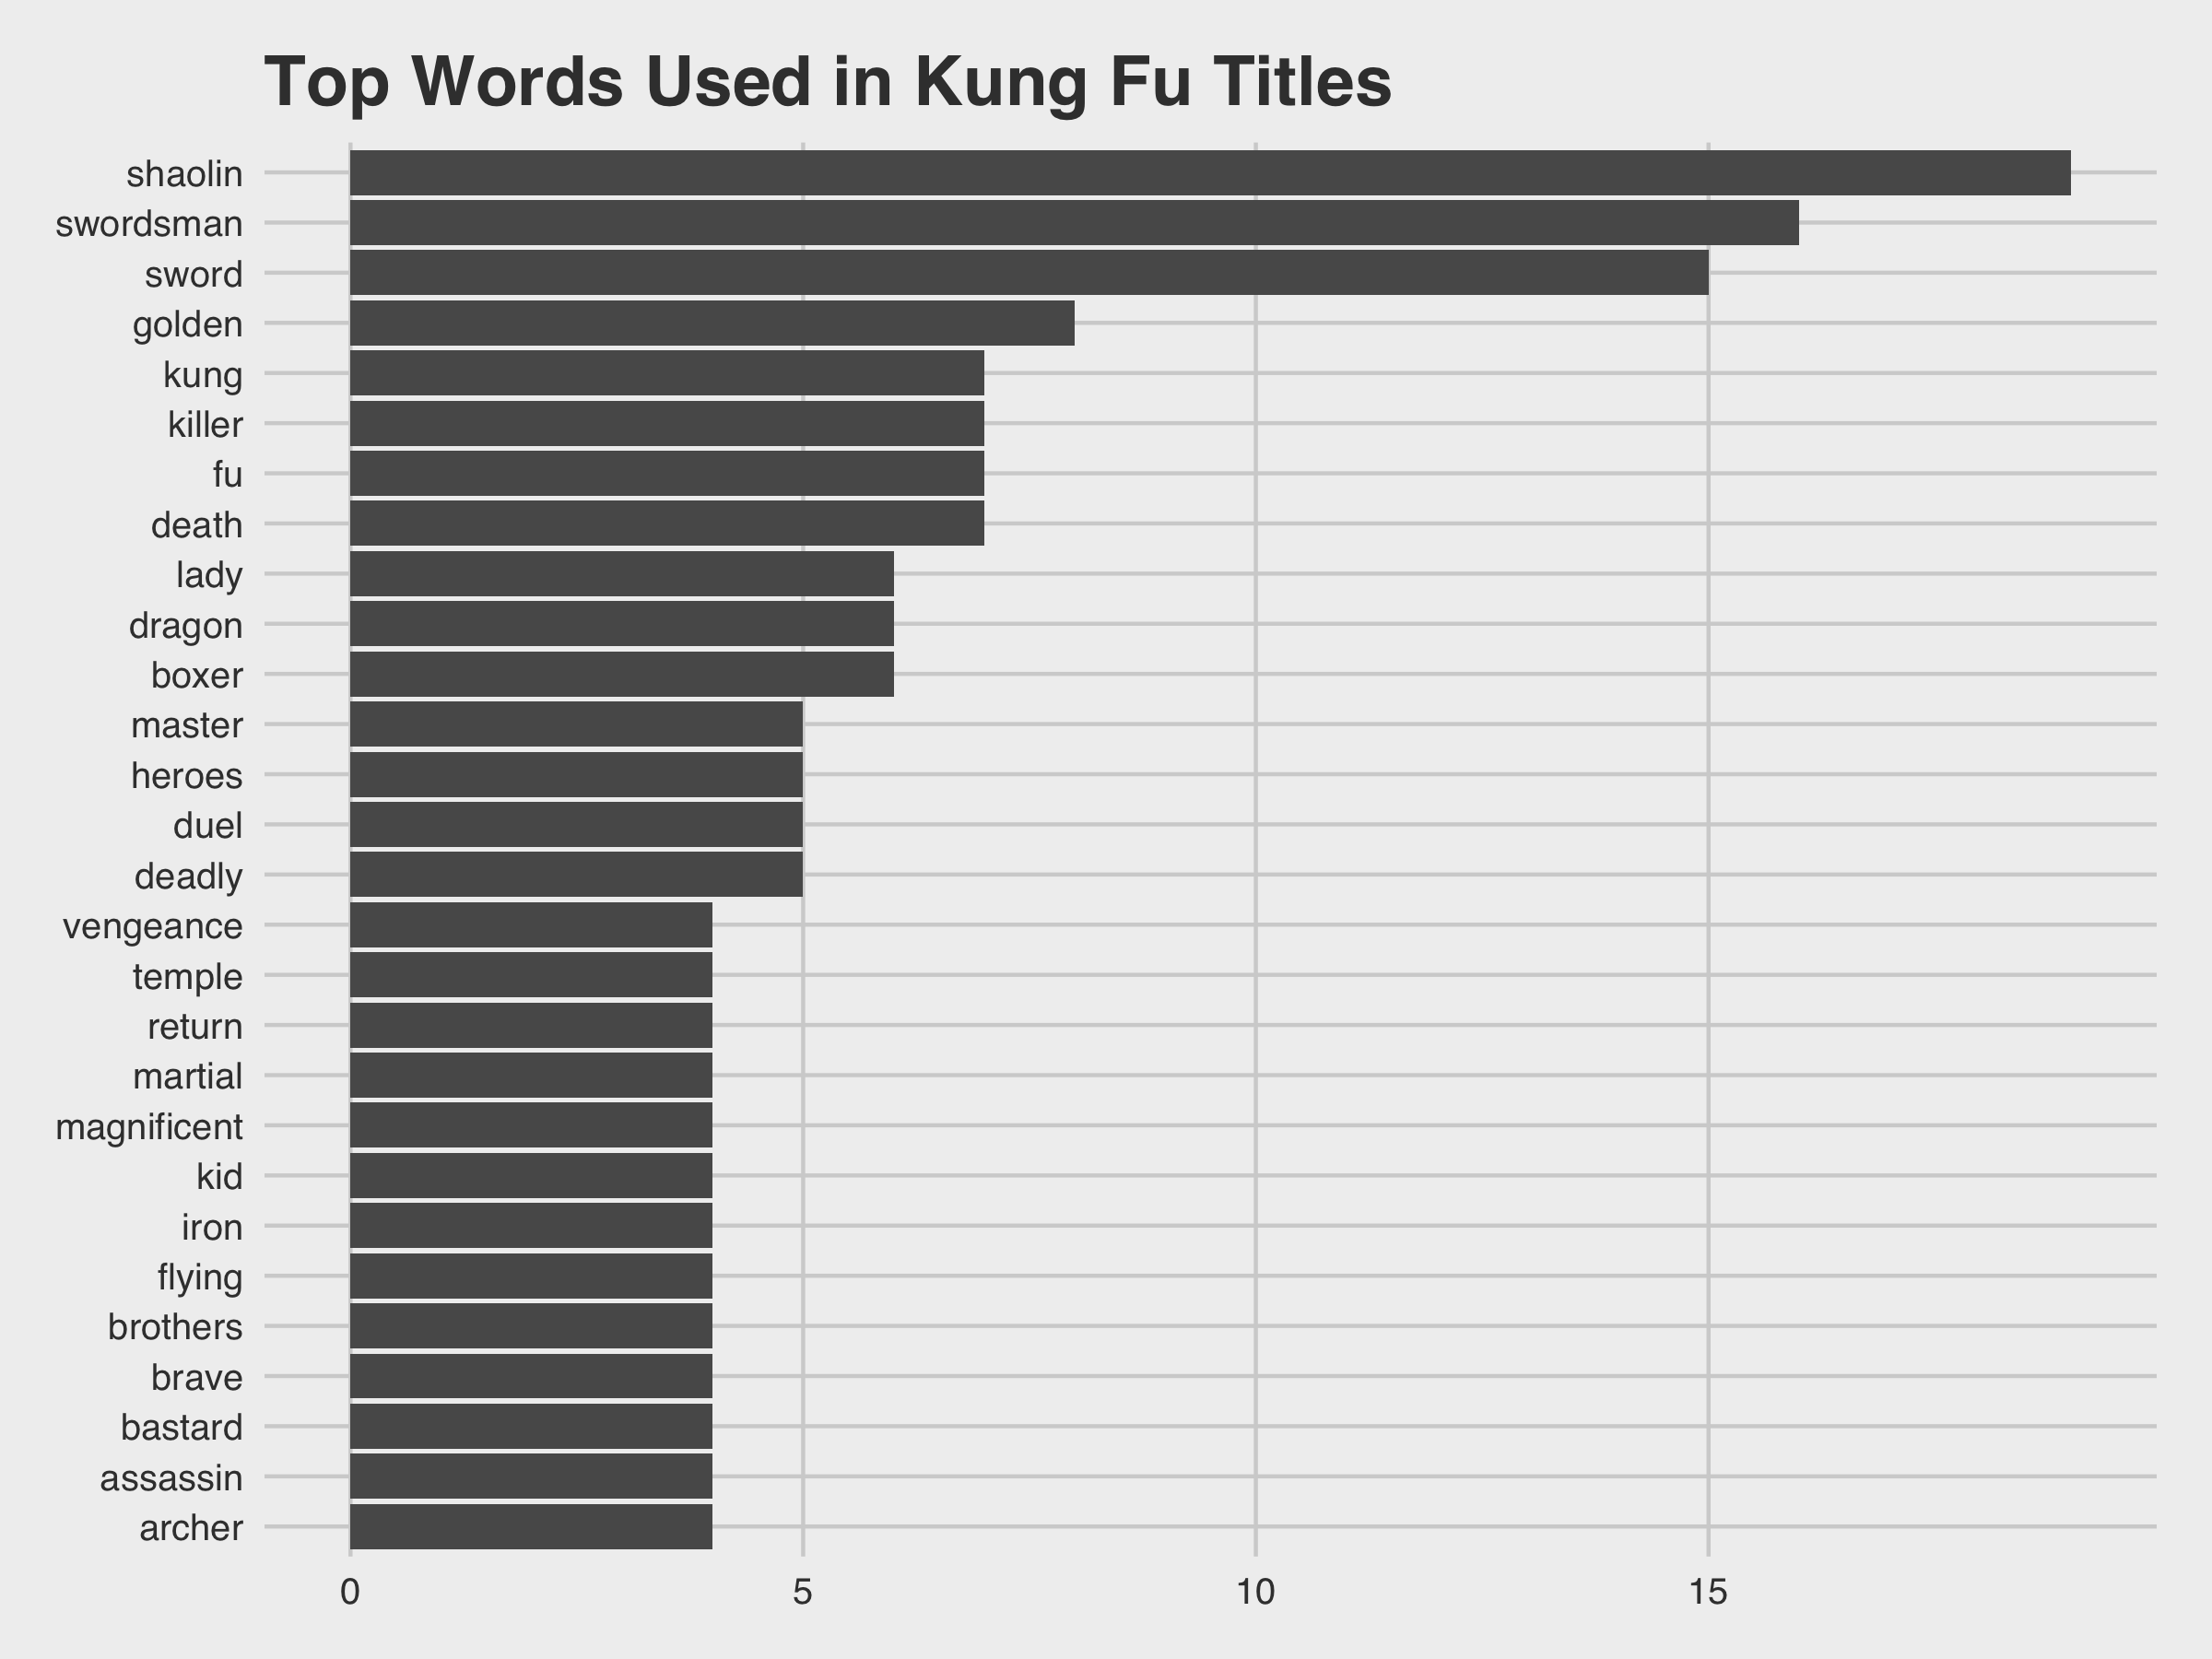 Top Words in Titles